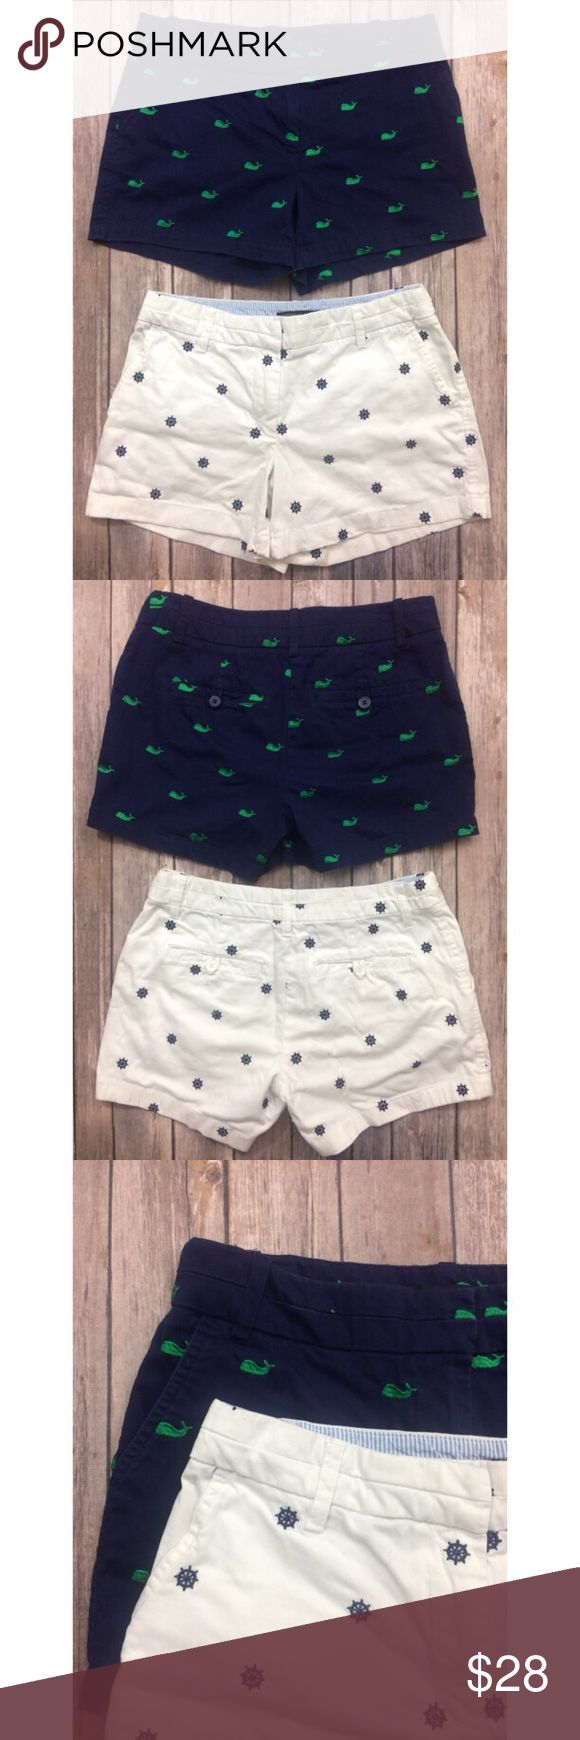 Bundle! Navy & White Embroidered Nautical Shorts Two pairs of nautical themed shorts from the brand British Khaki in size 2. One is navy blue with embroidered green whales and the other is white with embroidered navy blue ship wheels. Very good condition. Please comment with questions or requests for measurements :) British Khaki Shorts